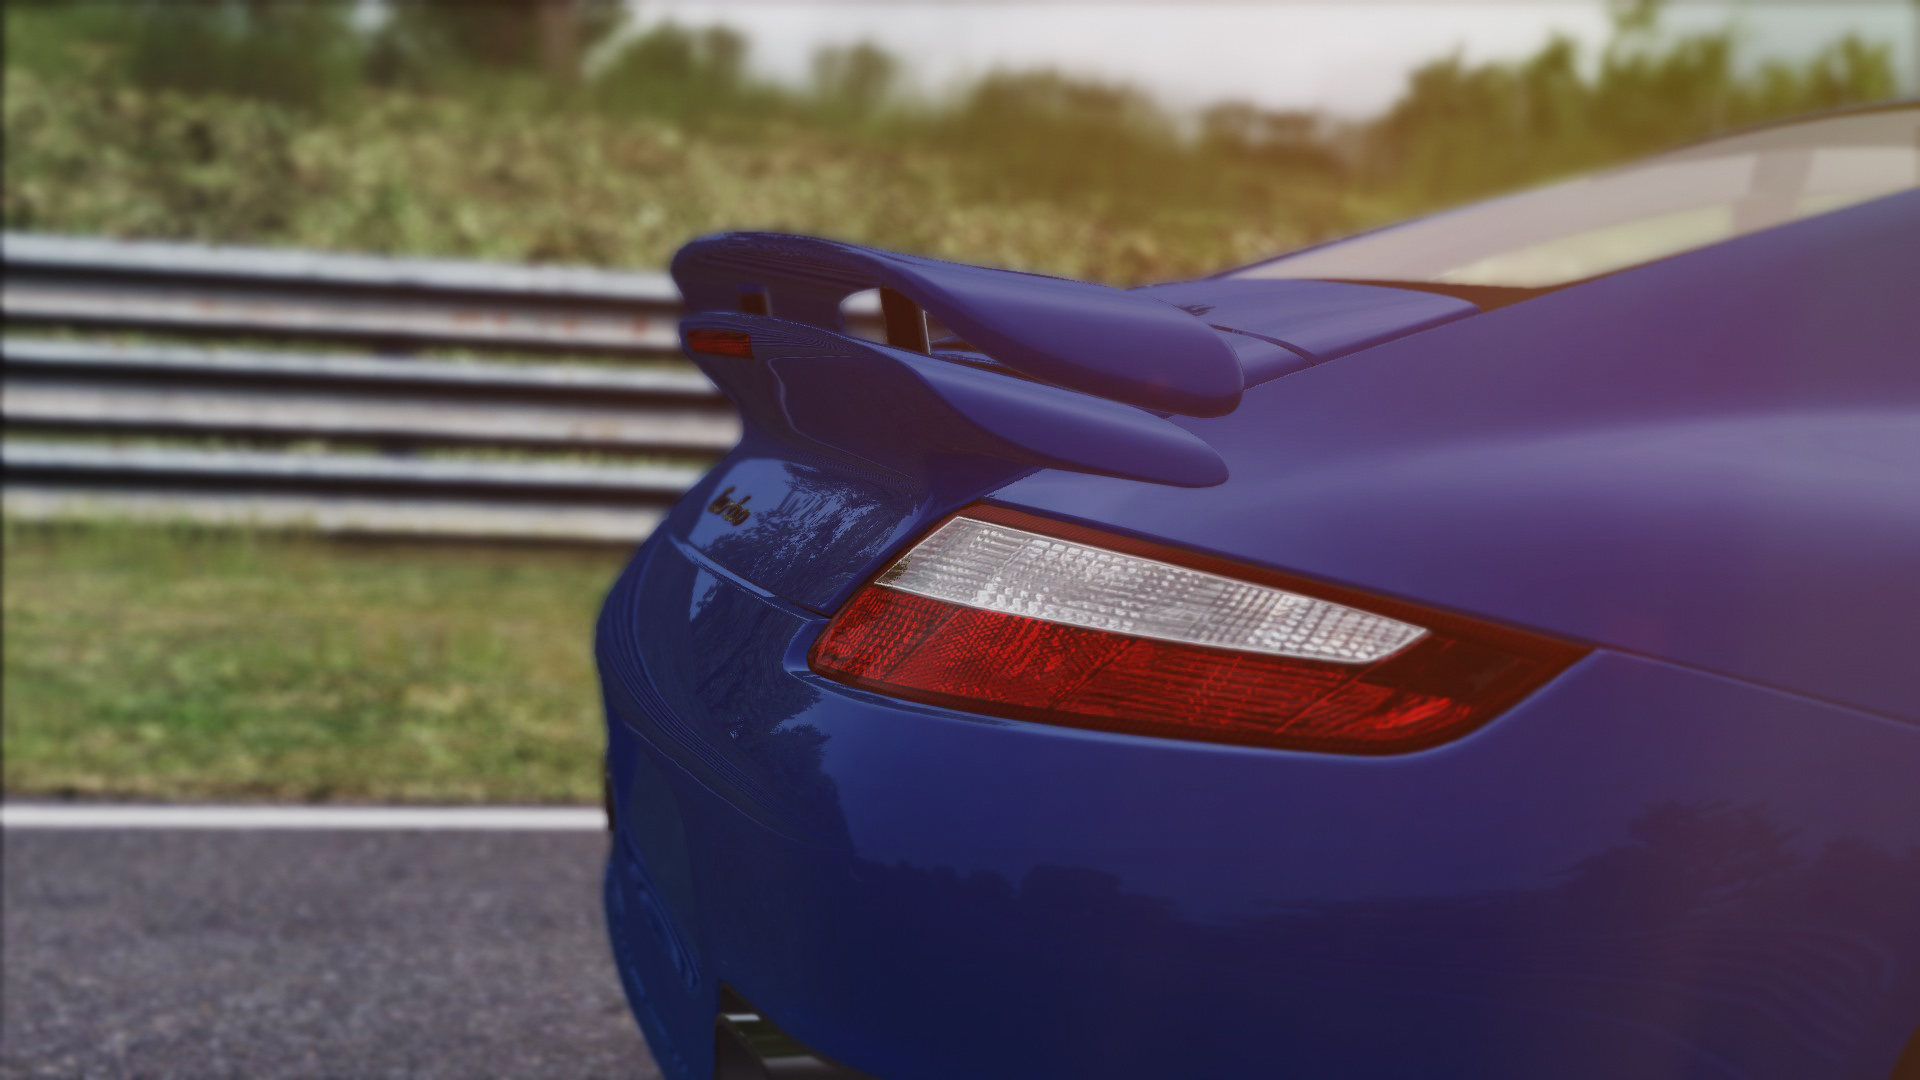 Screenshot_porsche_997turbo_ks_nordschleife_17-8-115-15-2-44.jpg